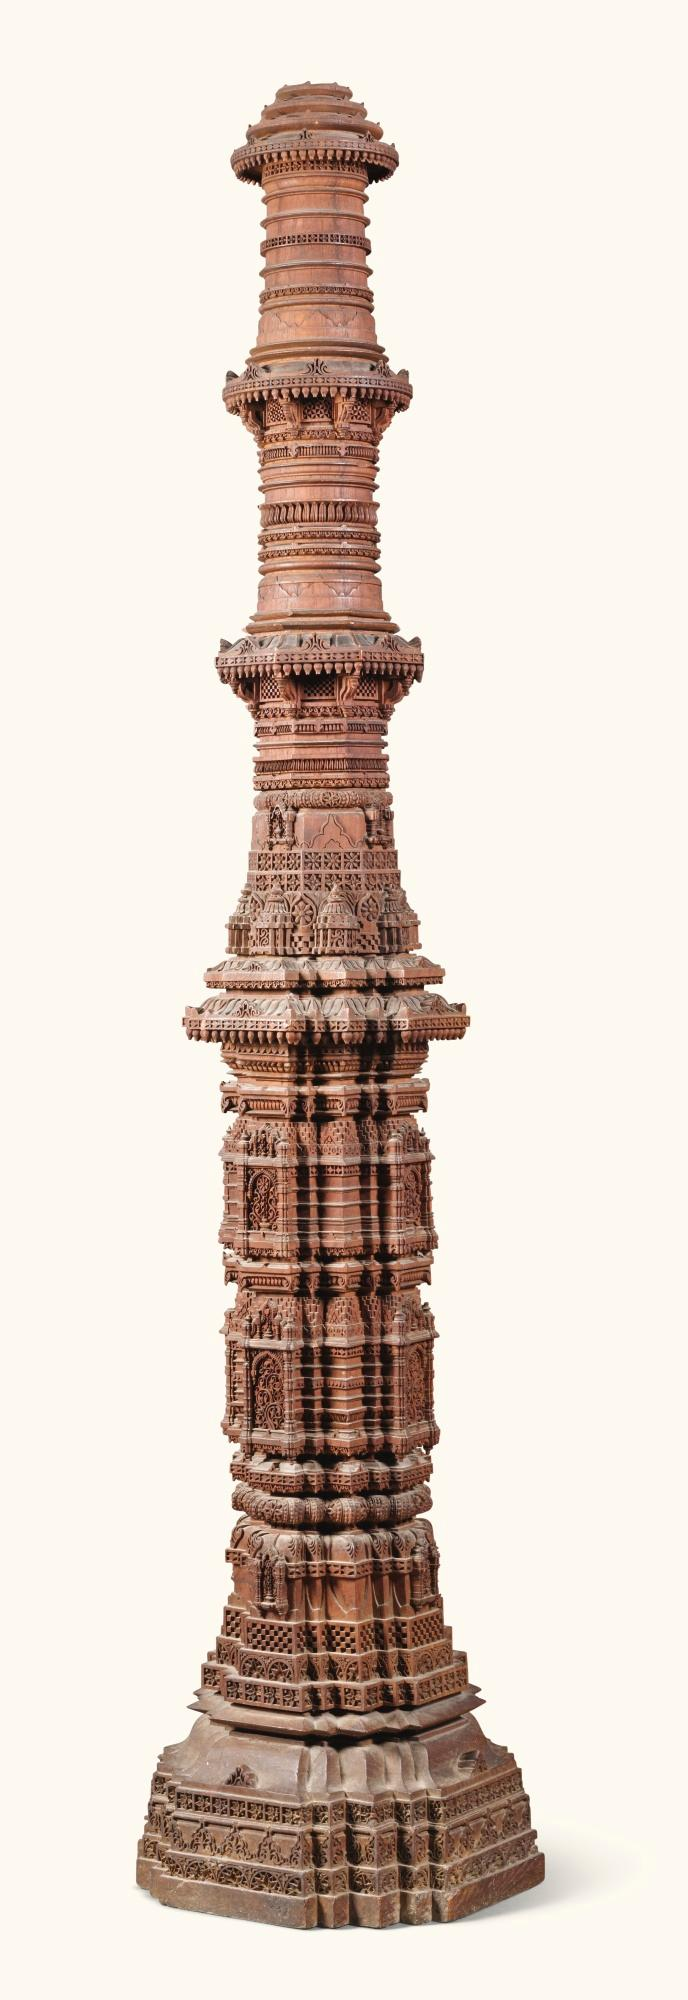 A LARGEANGLO-INDIAN CARVED TEAK MODEL OF A MINARET, PROBABLY FROM THE RANI SIPRI MOSQUE, AHMEDABAD, GUJARAT, MID-19TH CENTURY |